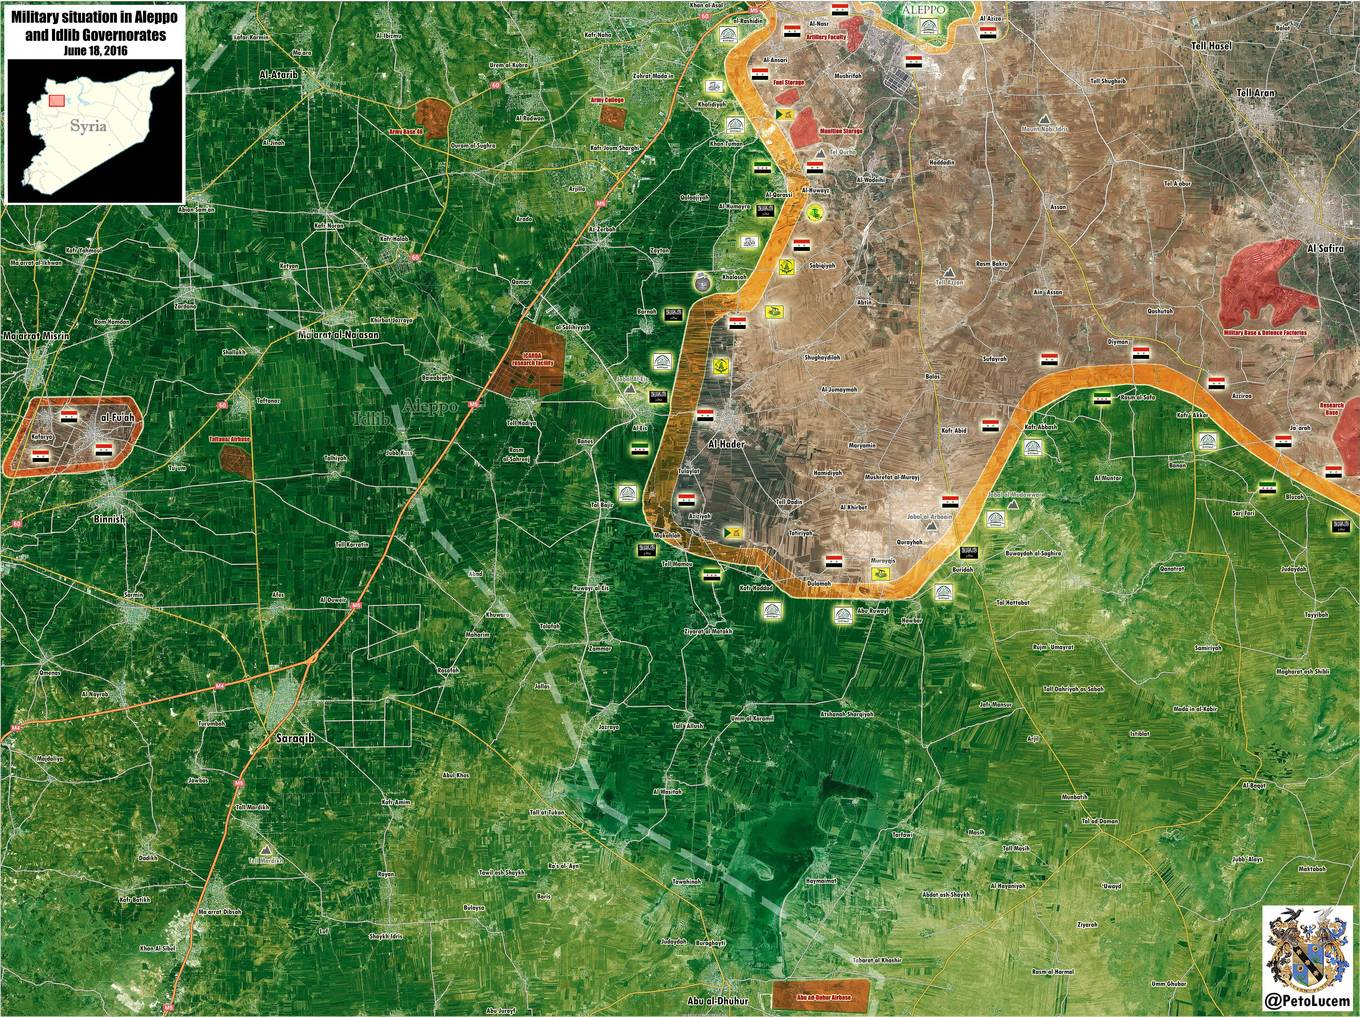 Military Situation in Aleppo and Idlib Provinces on June 18